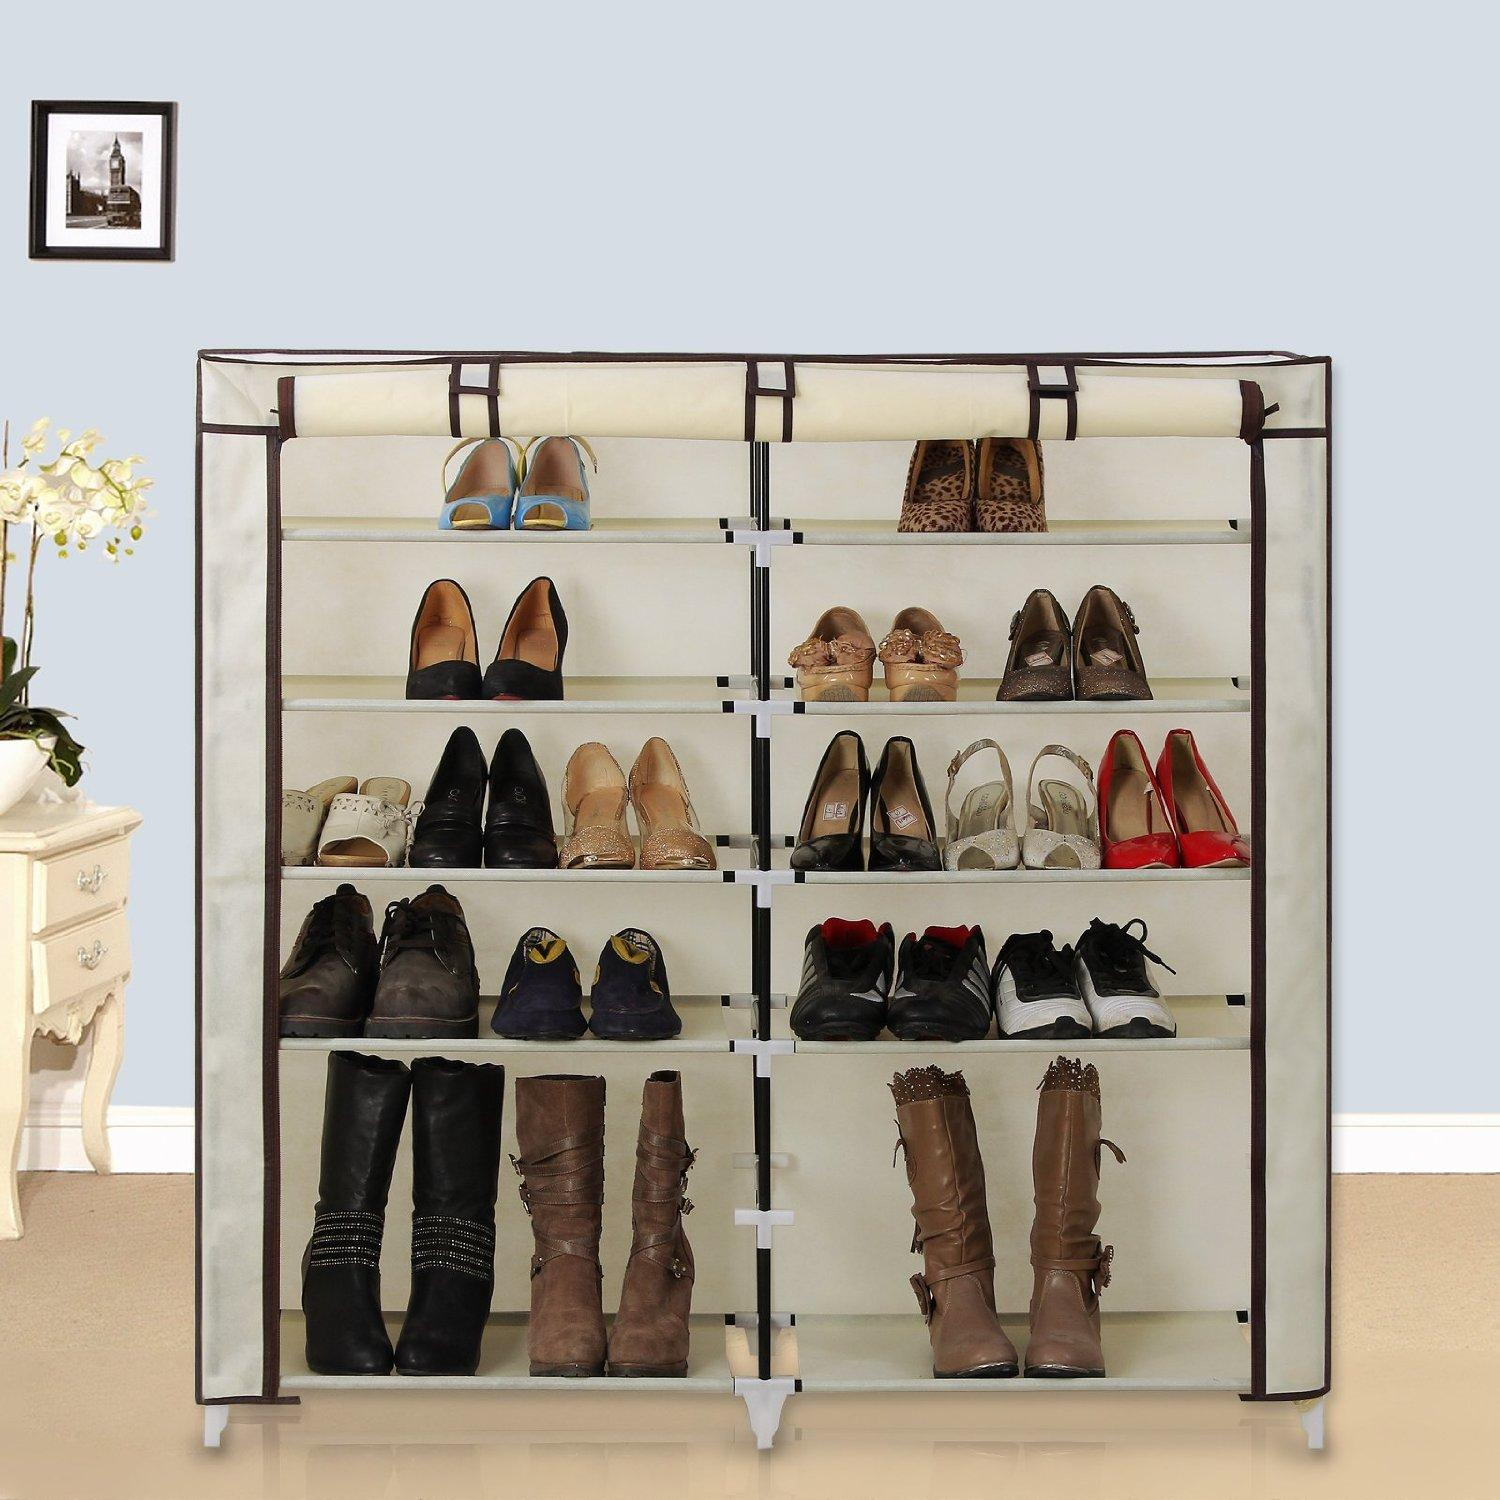 $25.49 Songmics 7 Tiers Shoe Rack Closet with Fabric Cover Beige URXJ12M